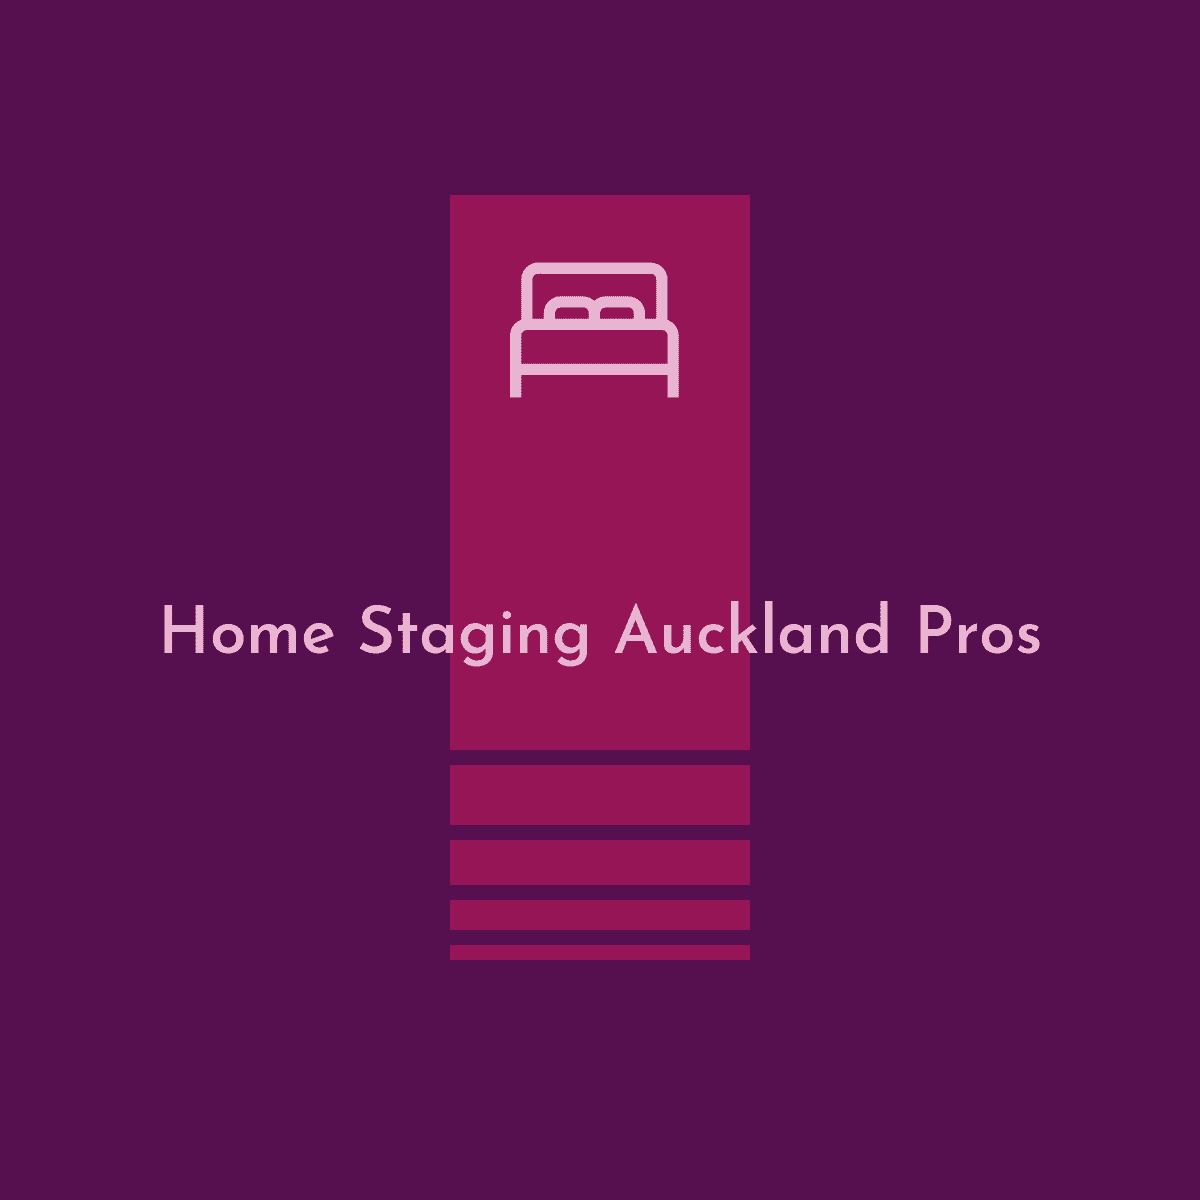 Home Staging Auckland Pros